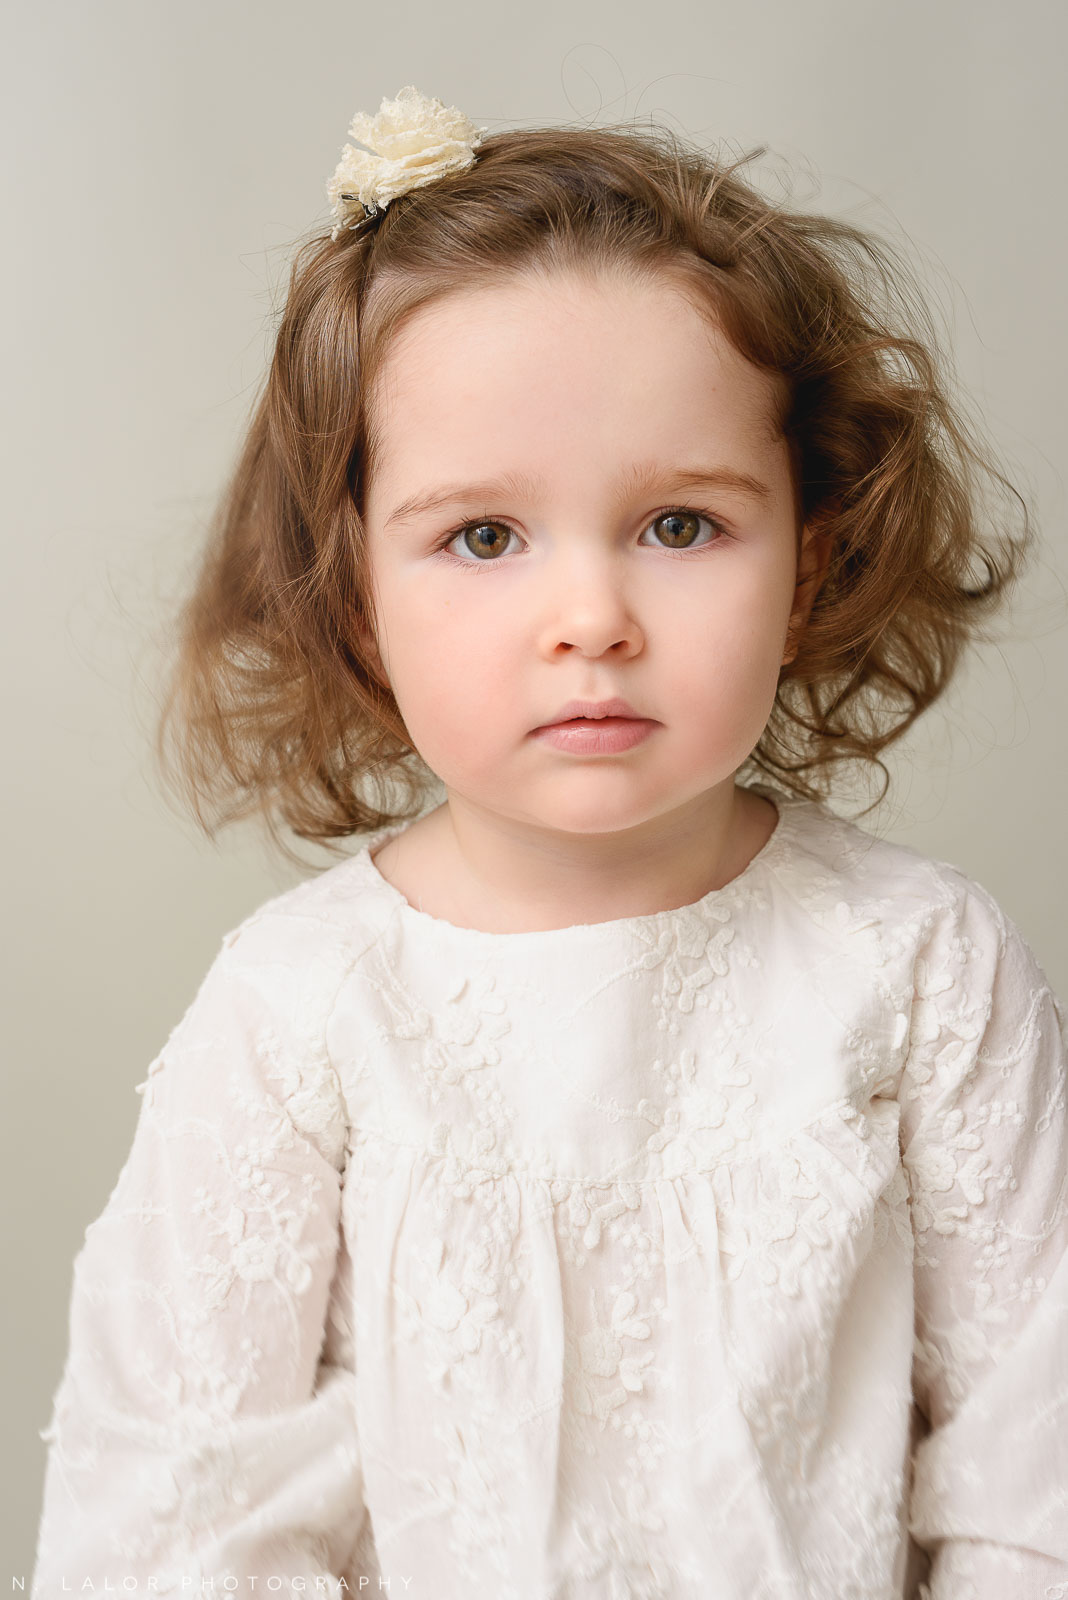 Beautiful simple photograph of a toddler girl. Studio portrait by N. Lalor Photography in Greenwich, Connecticut.